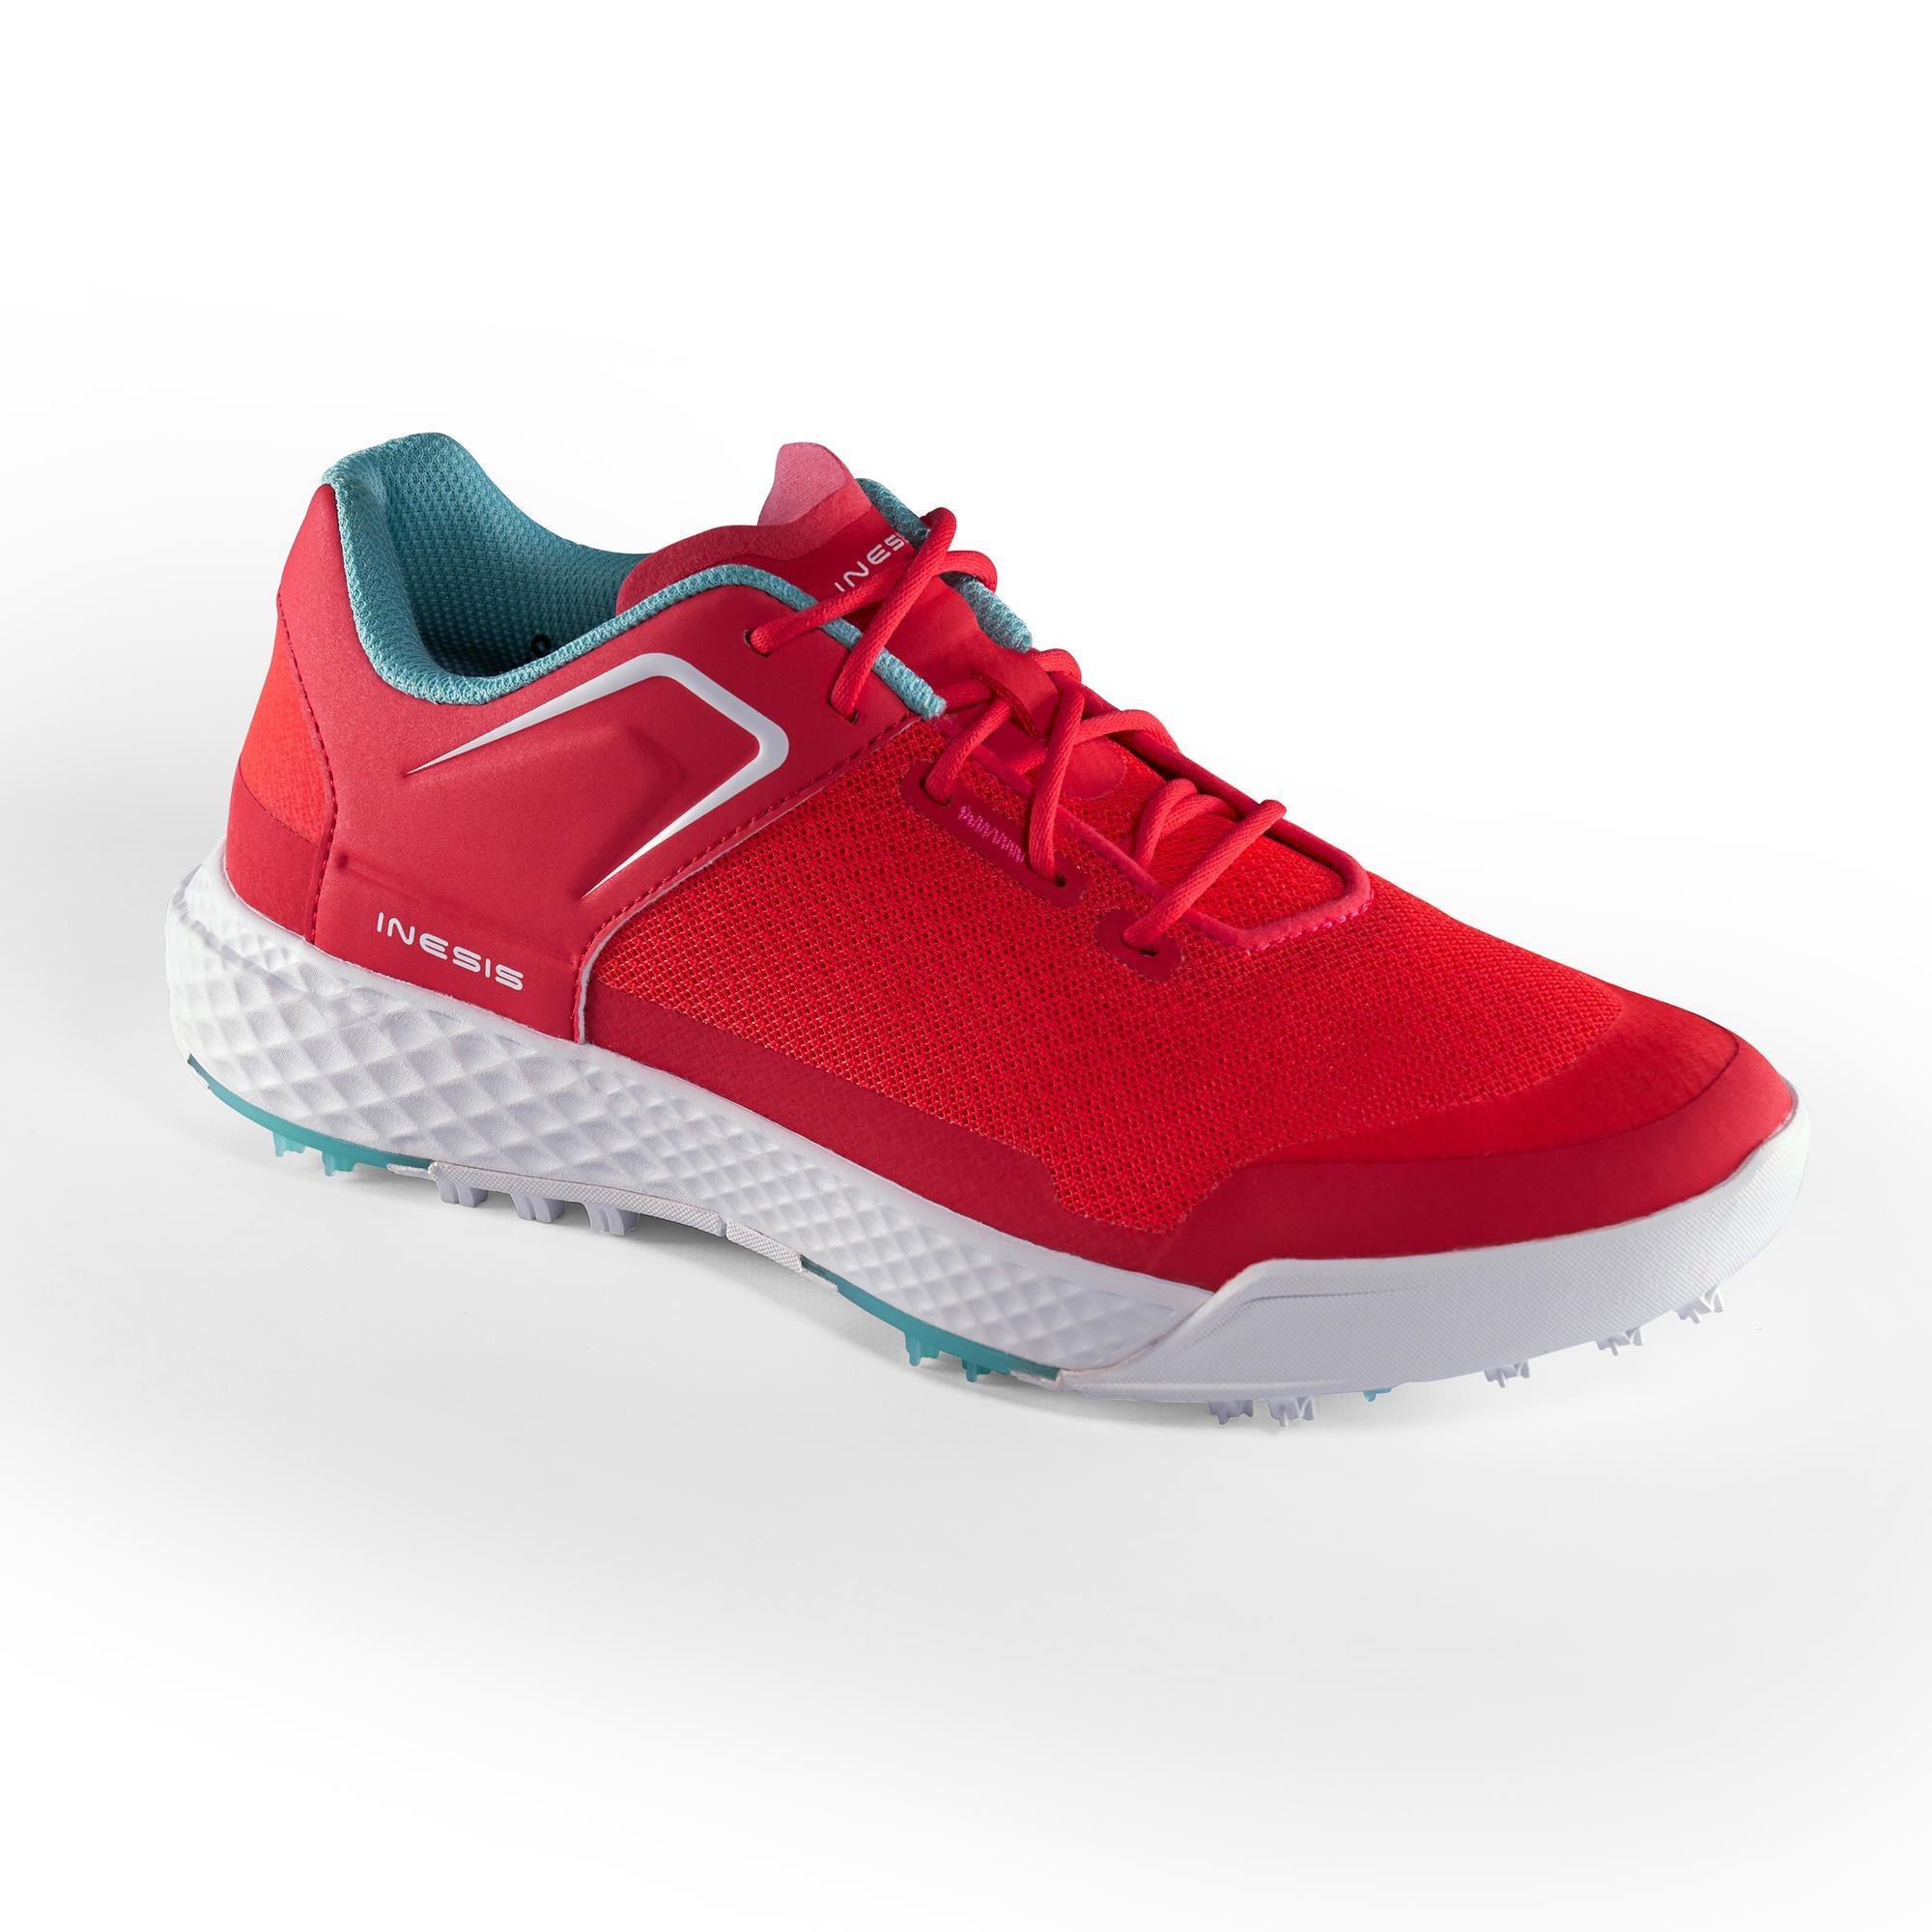 CHAUSSURES GOLF FEMME GRIP DRY ROUGES CORAIL - Inesis